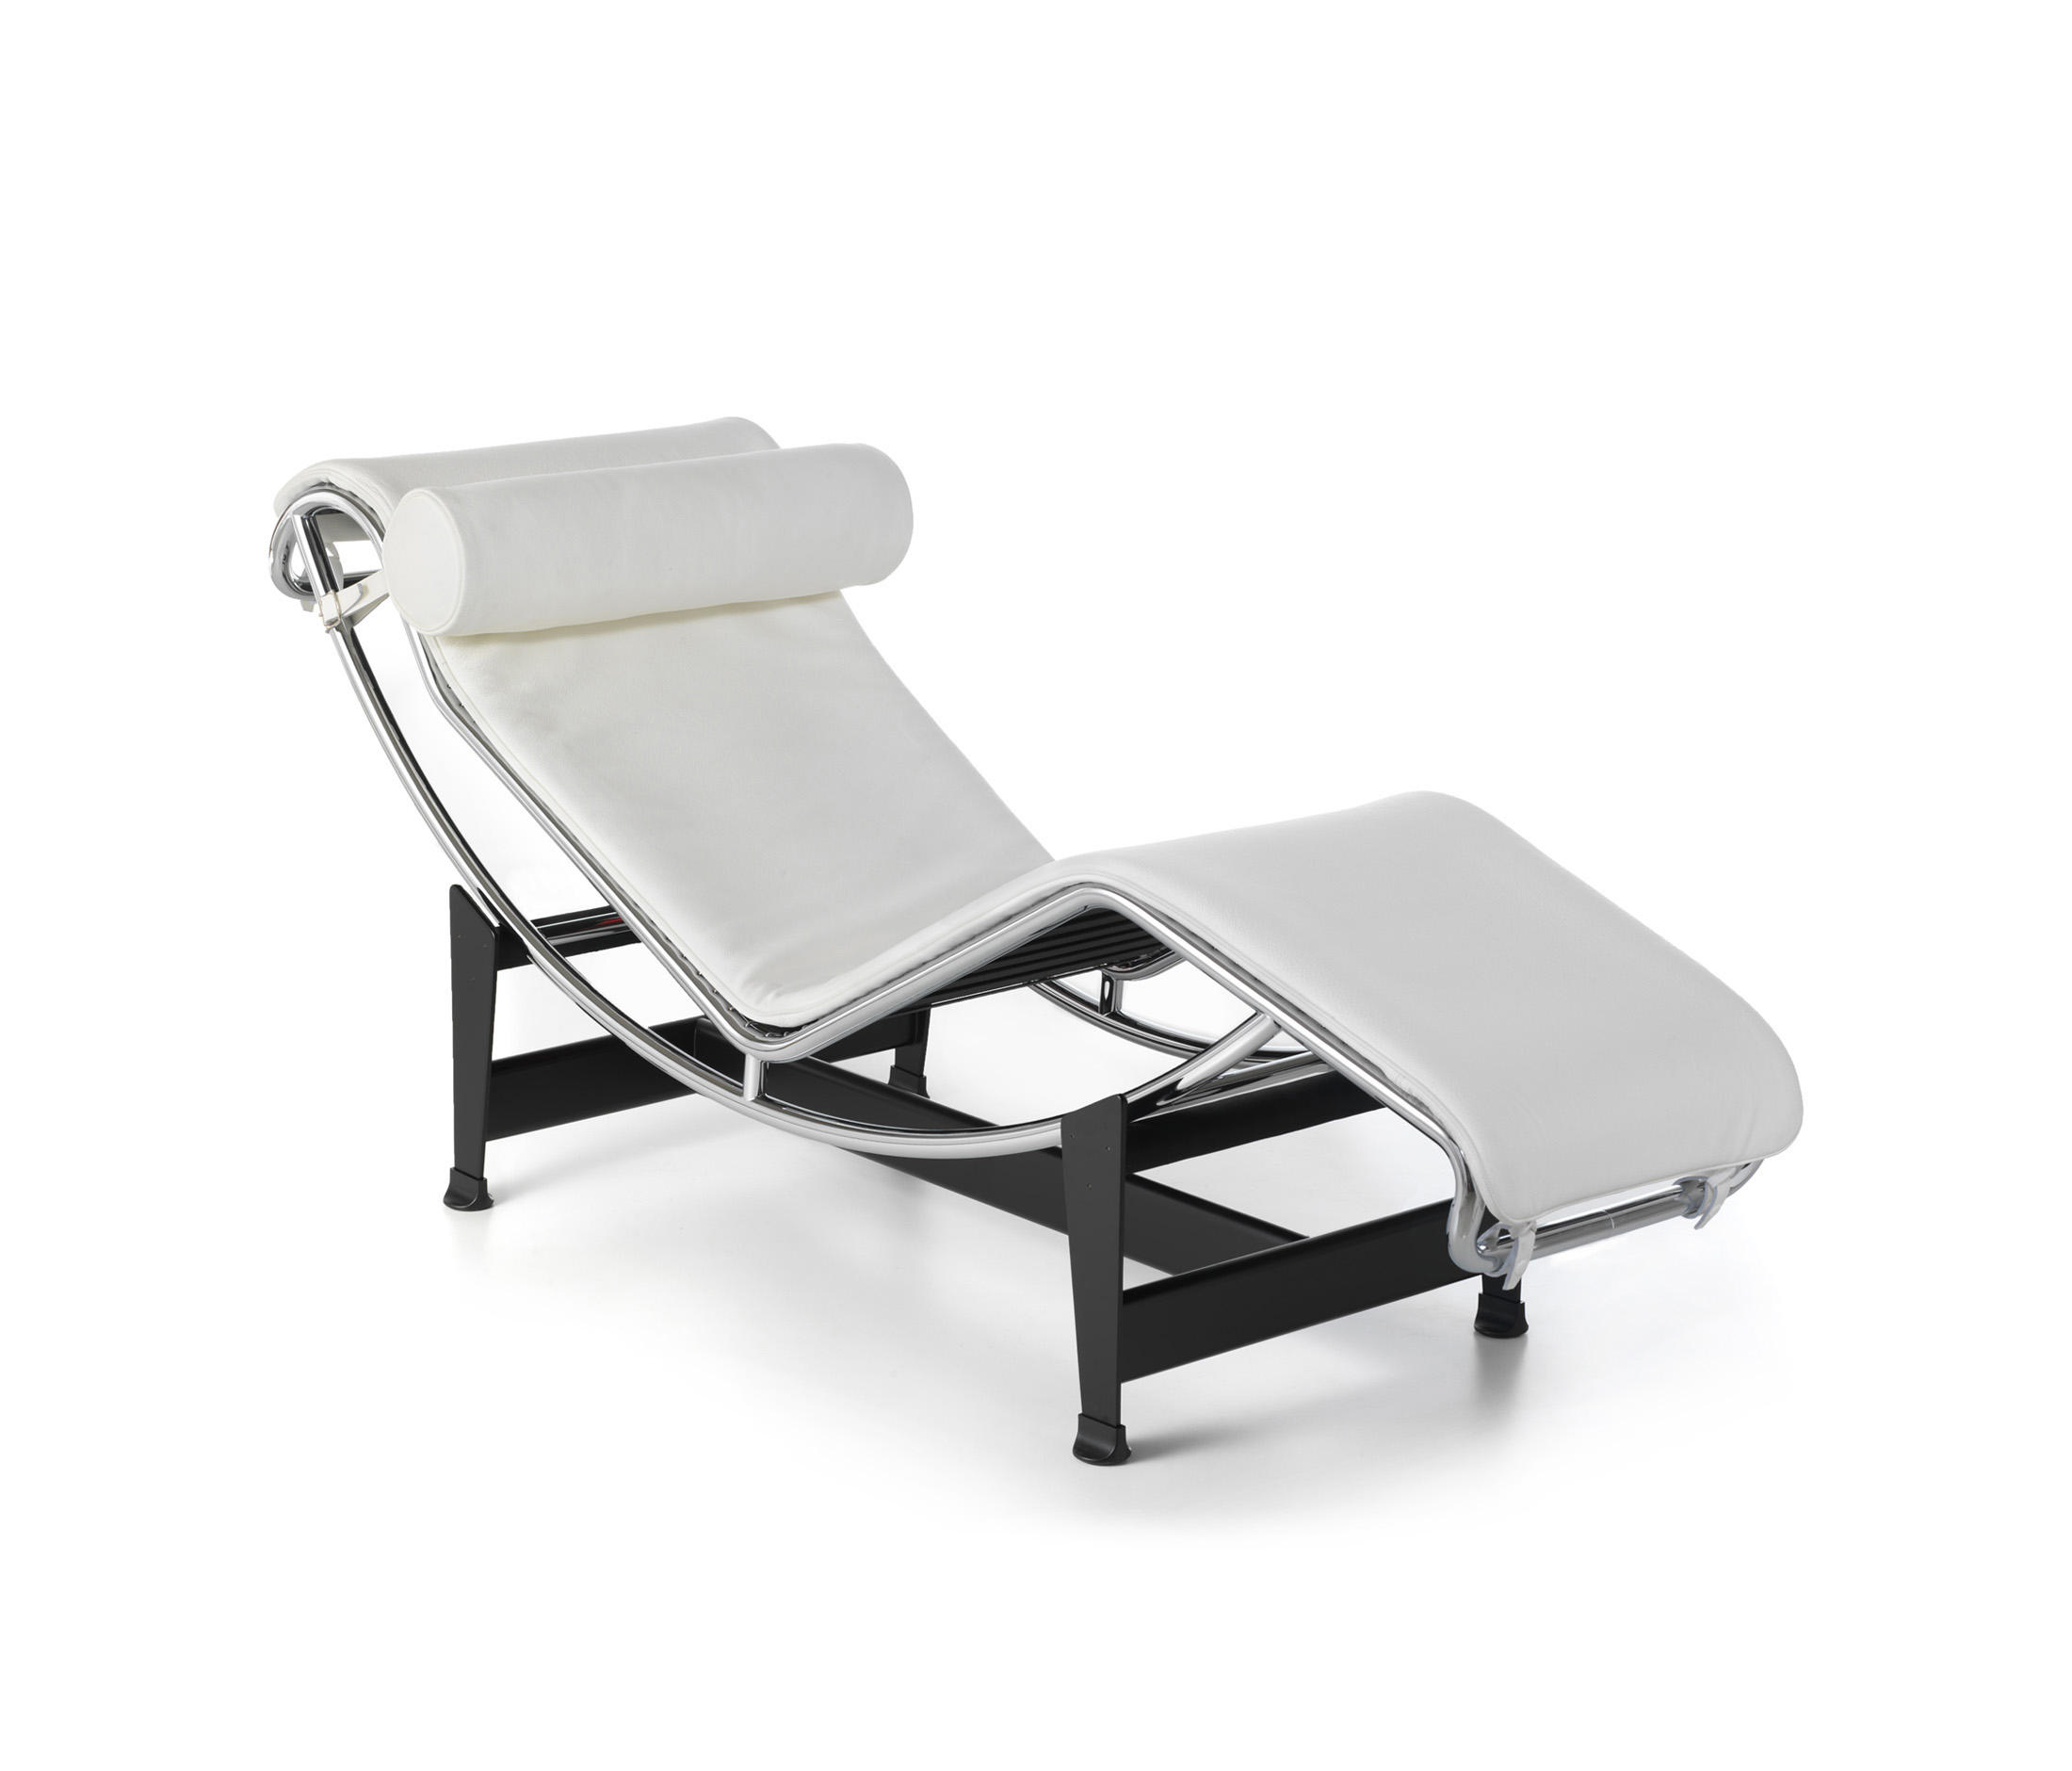 Le Corbusier Chaise Longue Dimensions